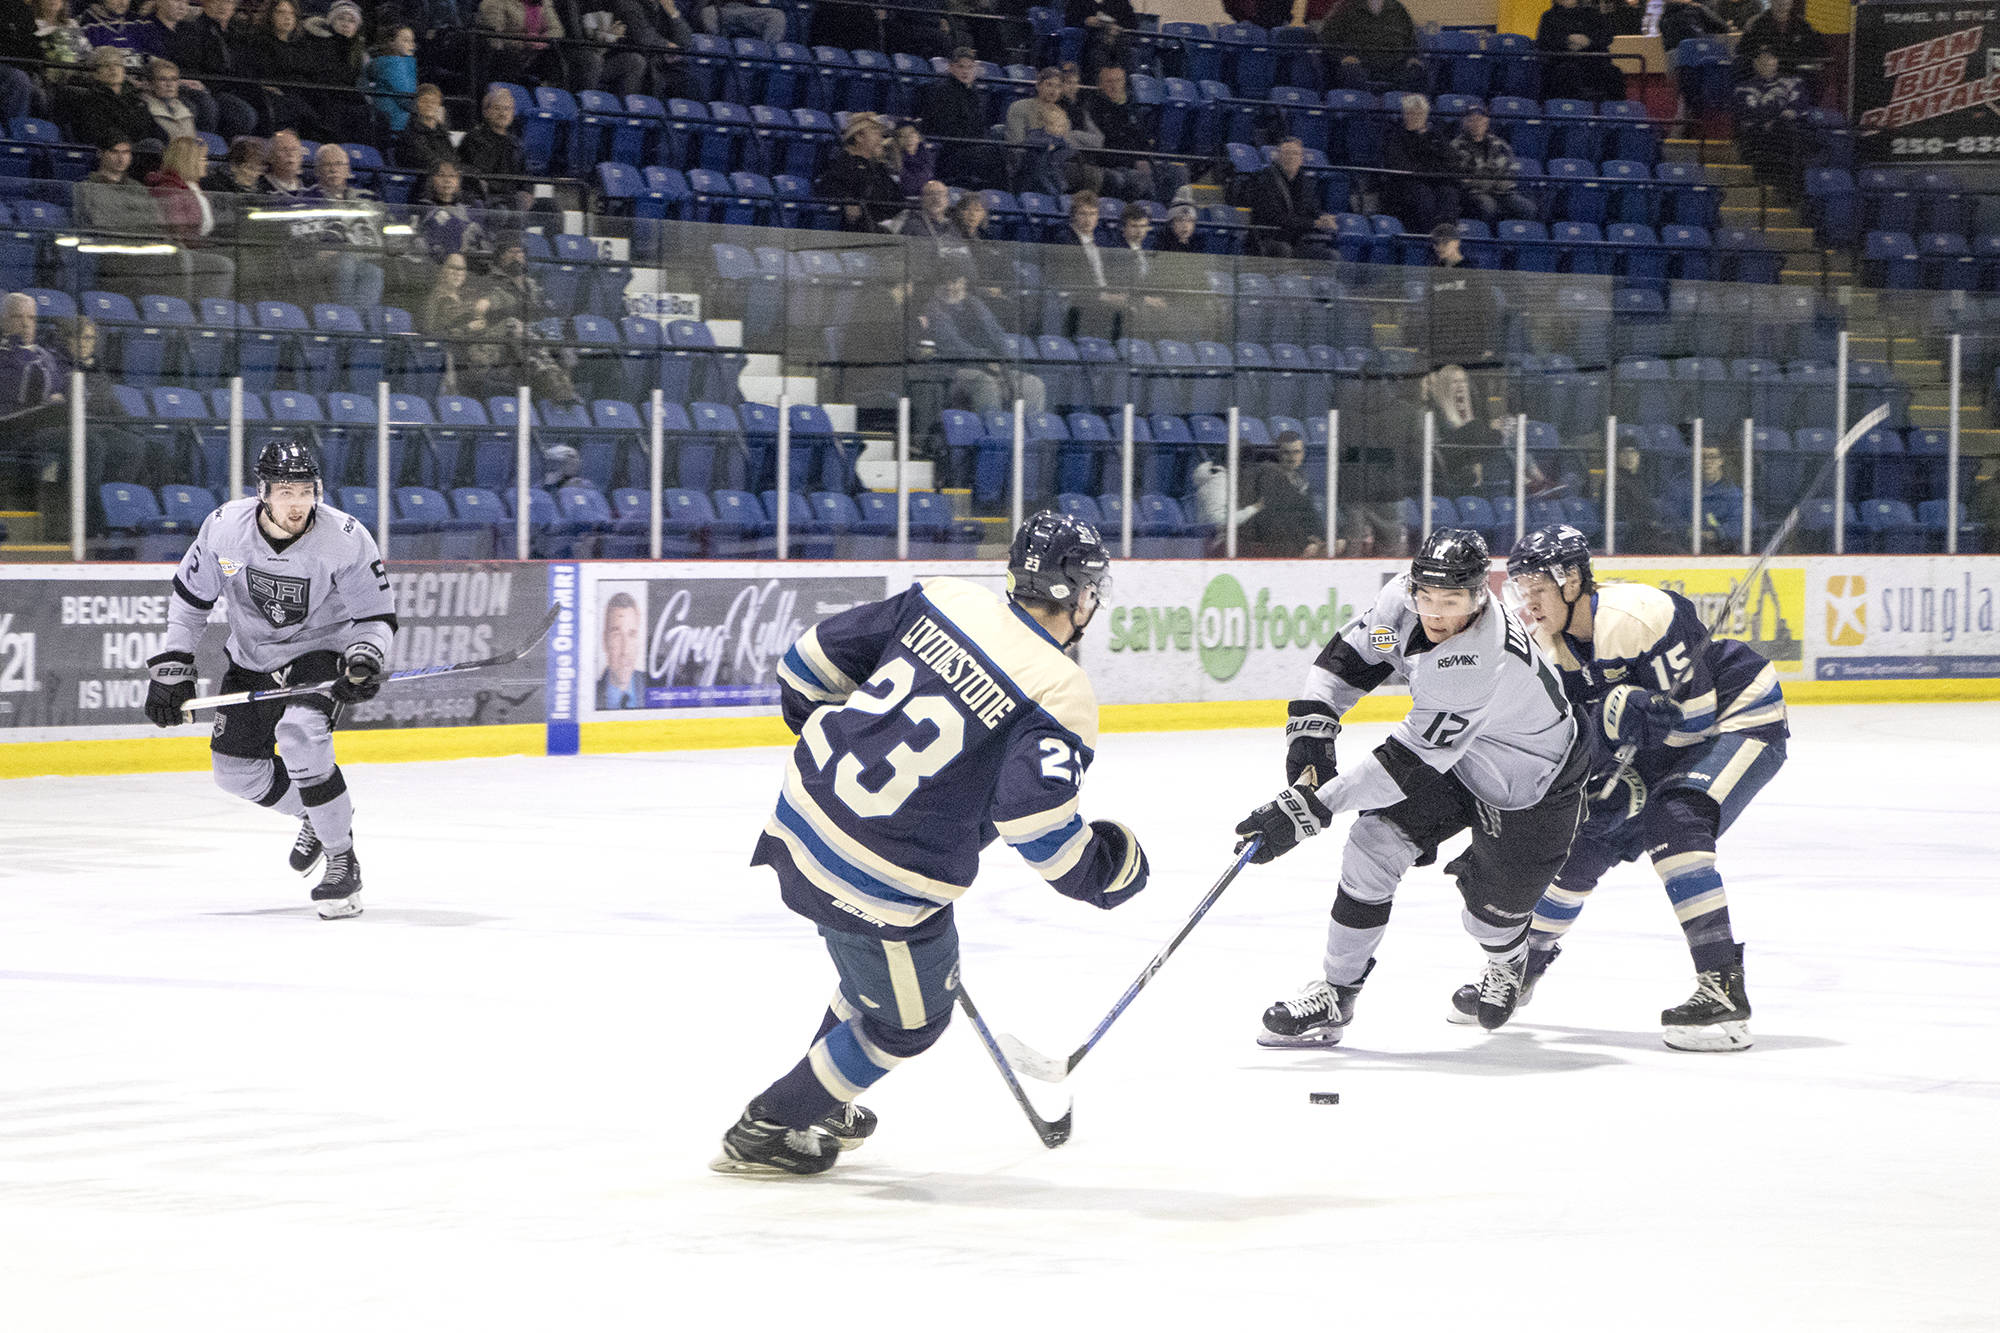 Silverbacks' forward Nick Unruh cuts between Jake Livingstone and Daneel Lategan of the Langley Rivermen while pushing into their zone during the Nov. 28 game at the Shaw Centre. (Jodi Brak/Salmon Arm Observer)